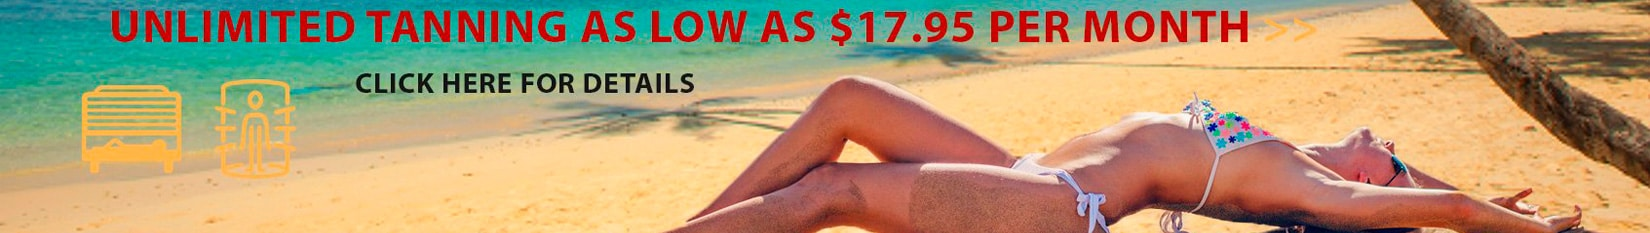 Tanning as low as 17.95 per month